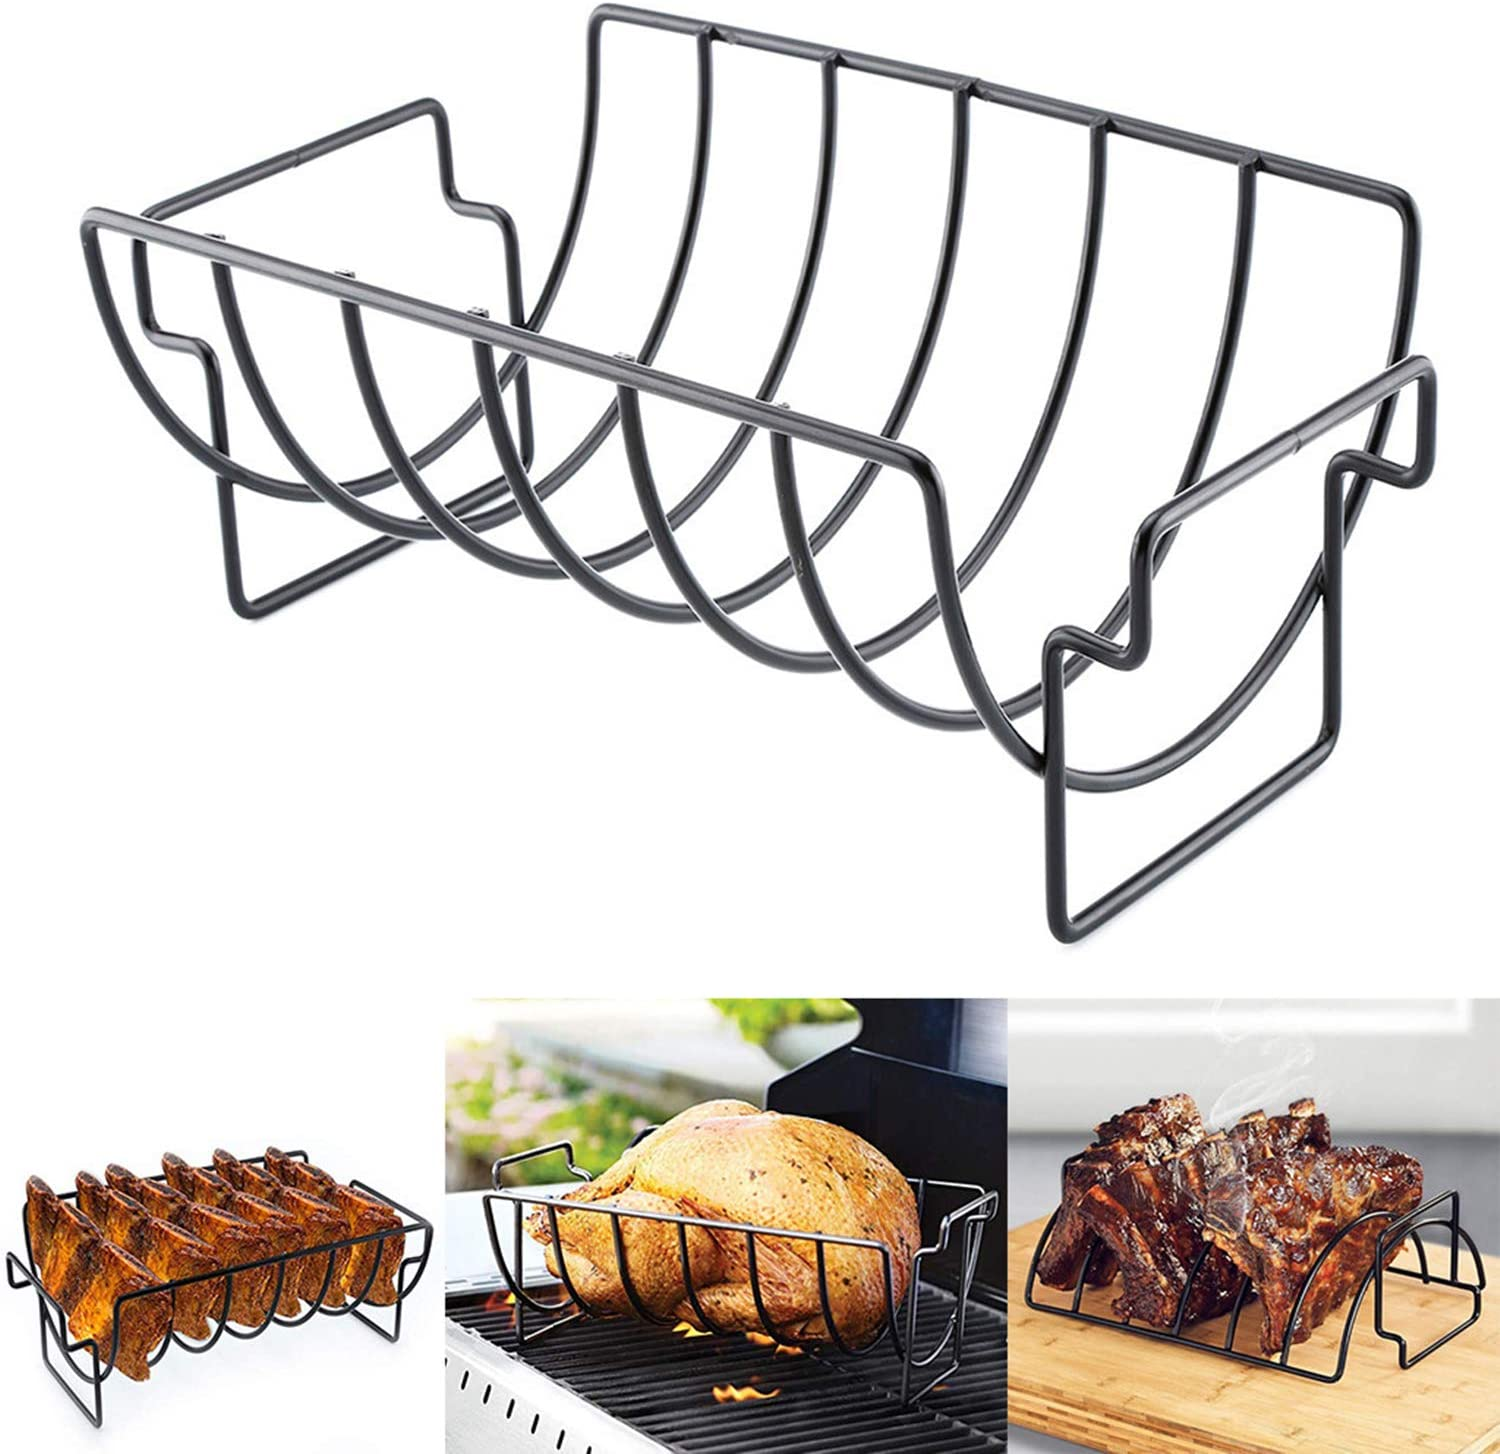 Excursion Sports Chicken Wing & Leg Rack for Grill Smoker or Oven - Stainless Steel Vertical Roaster Stand & Drip Pan for Cooking Vegetables in BBQ Juices - Safe Barbecue Accessories